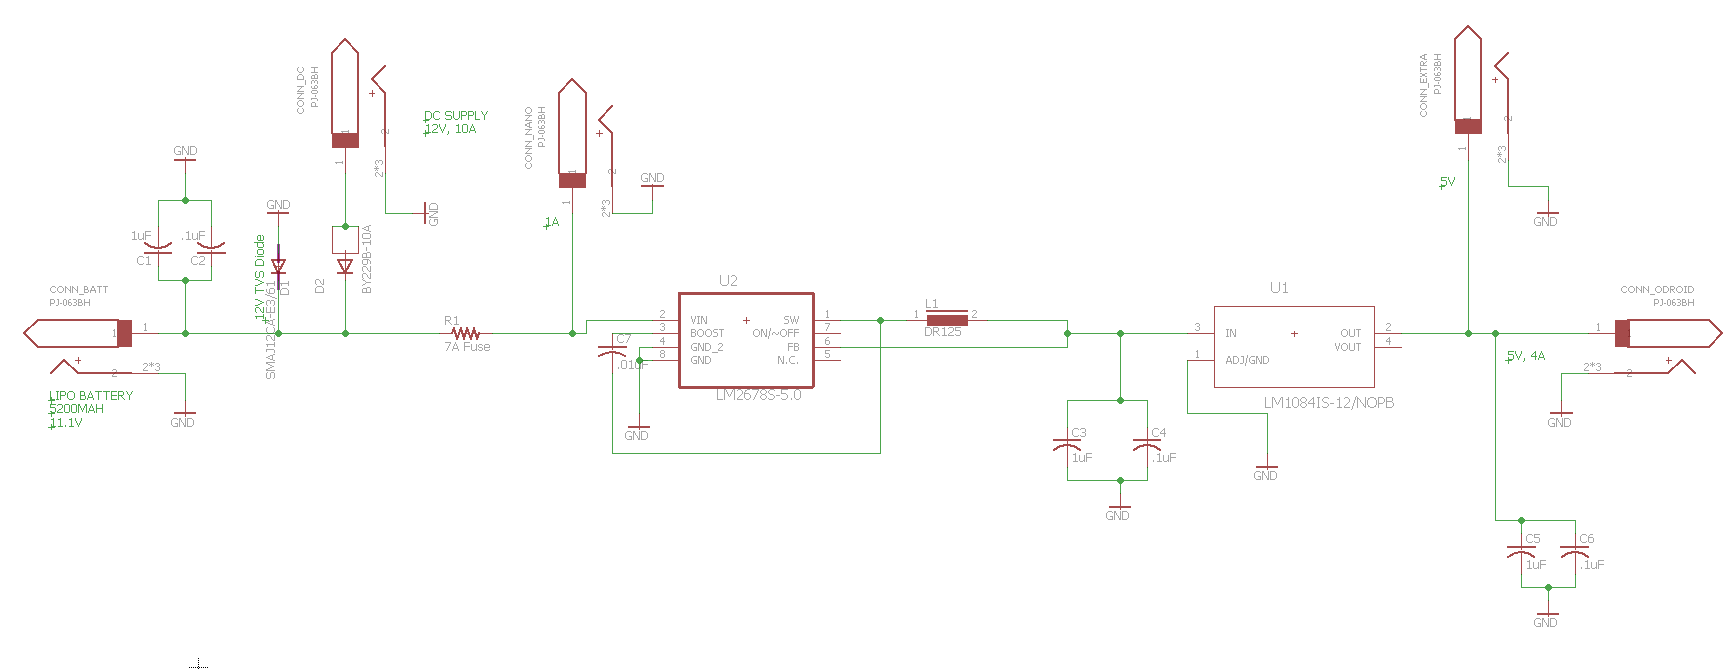 hight resolution of power distribution board rev 1 schematic pdb schematic